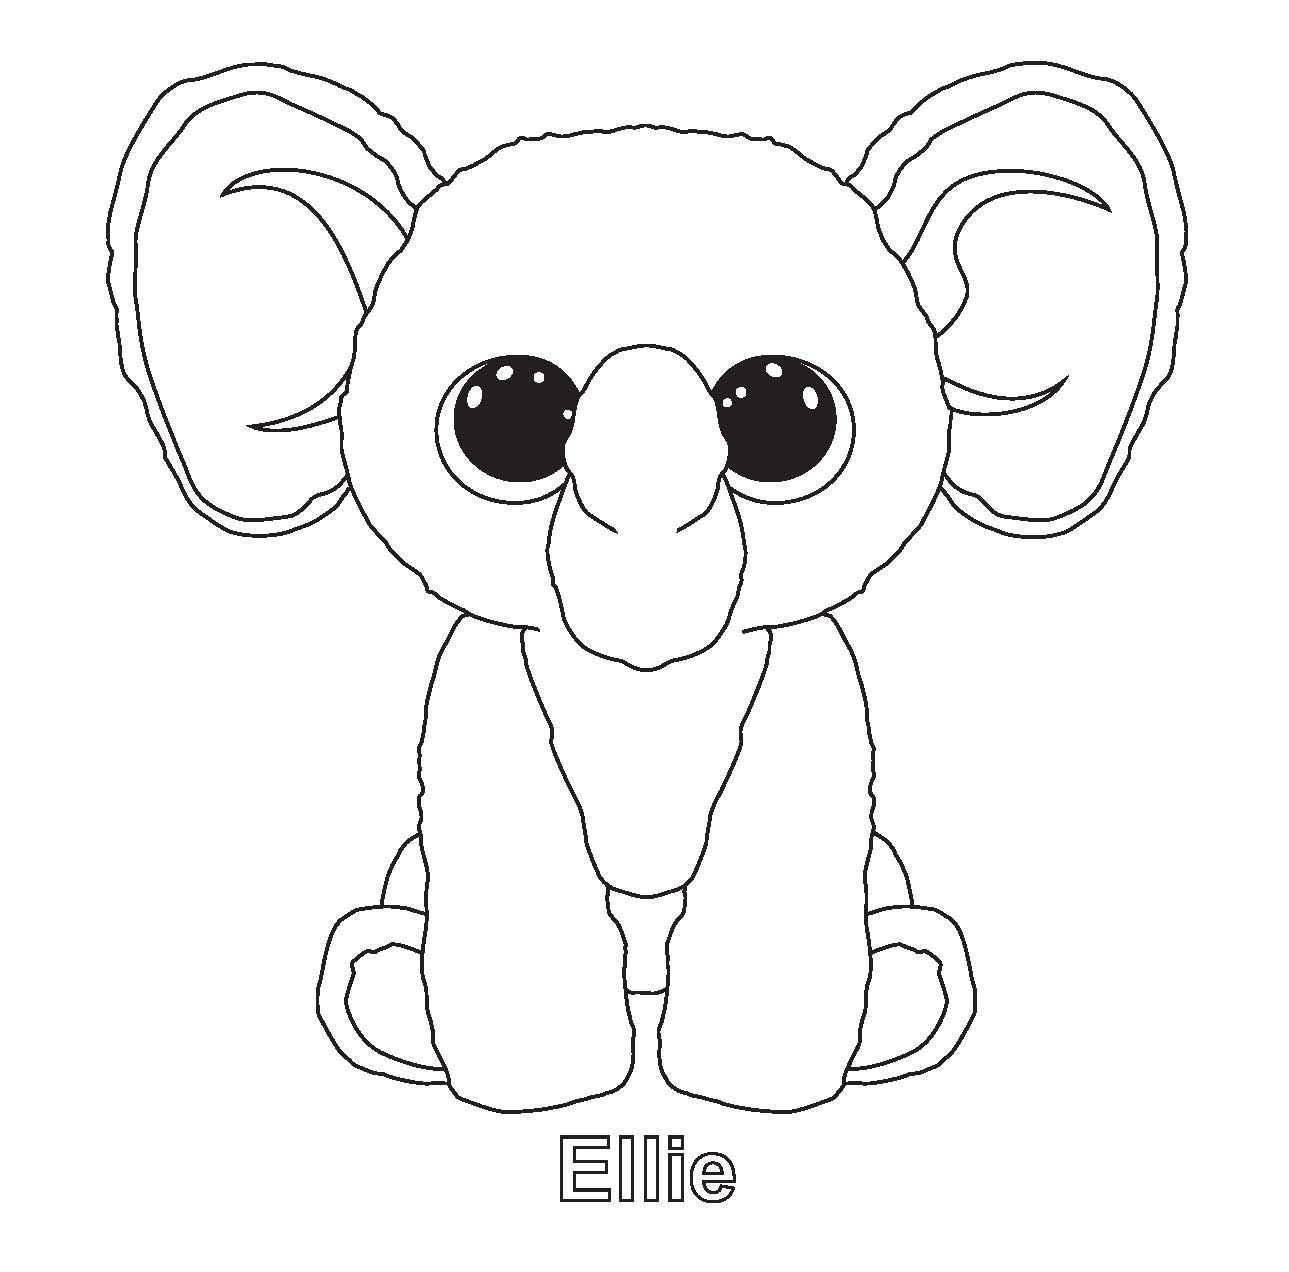 Ellie And Other Ty Beenie Boo Coloring Sheets Beanie Boo Birthdays Coloring Pages Animal Coloring Pages